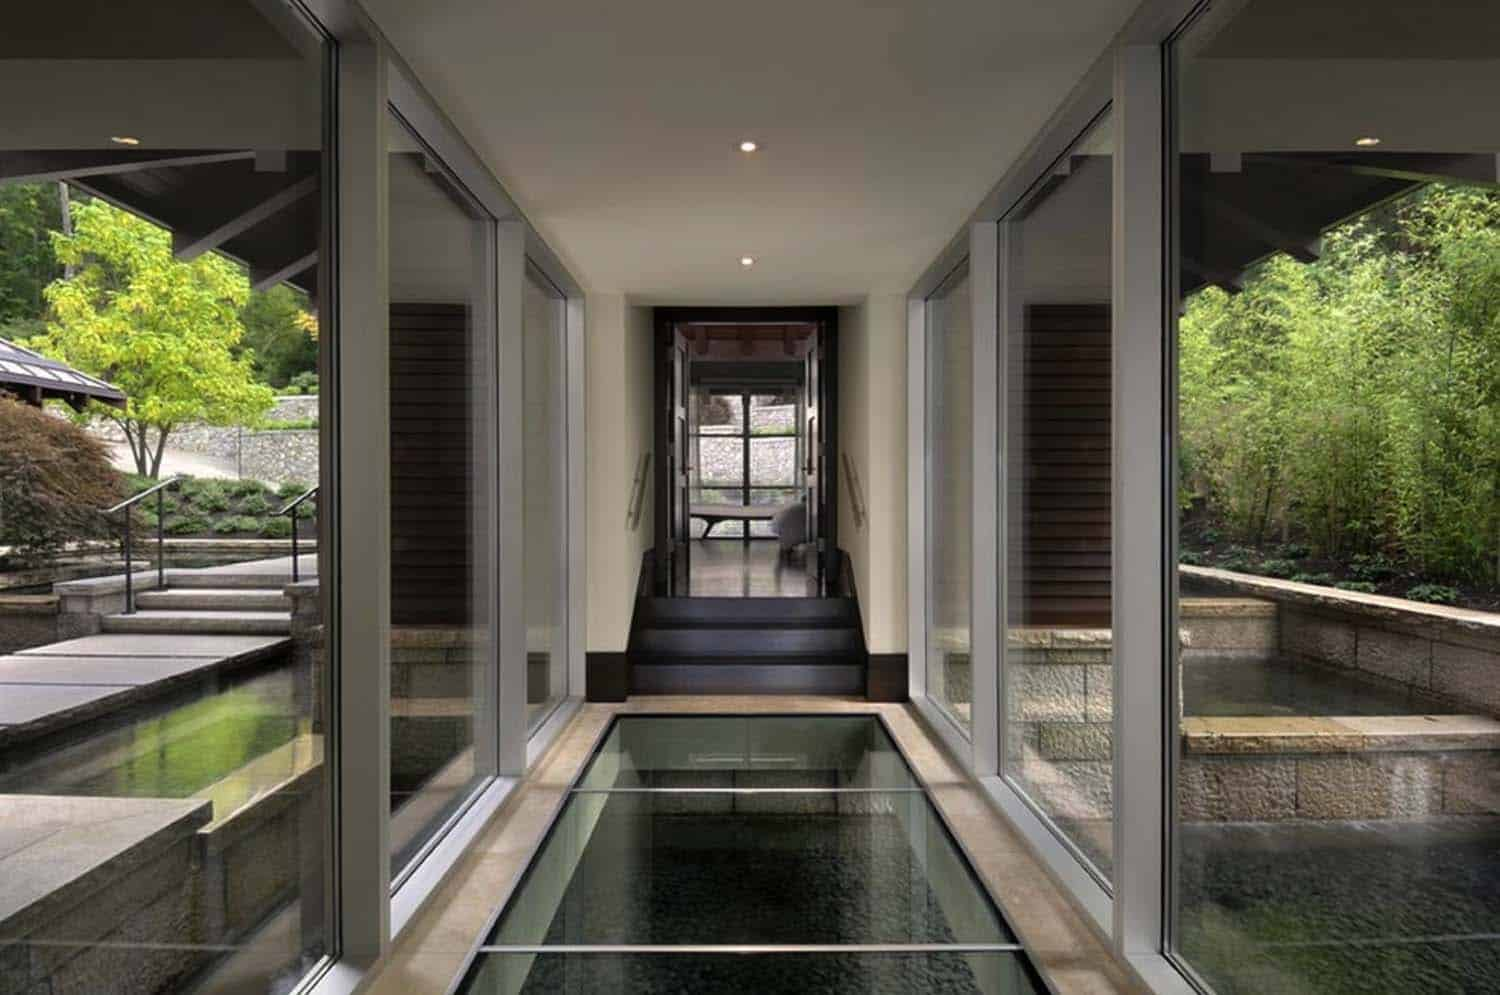 vancouver-island-residence-mckinley-burkart-architects-10-1-kindesign